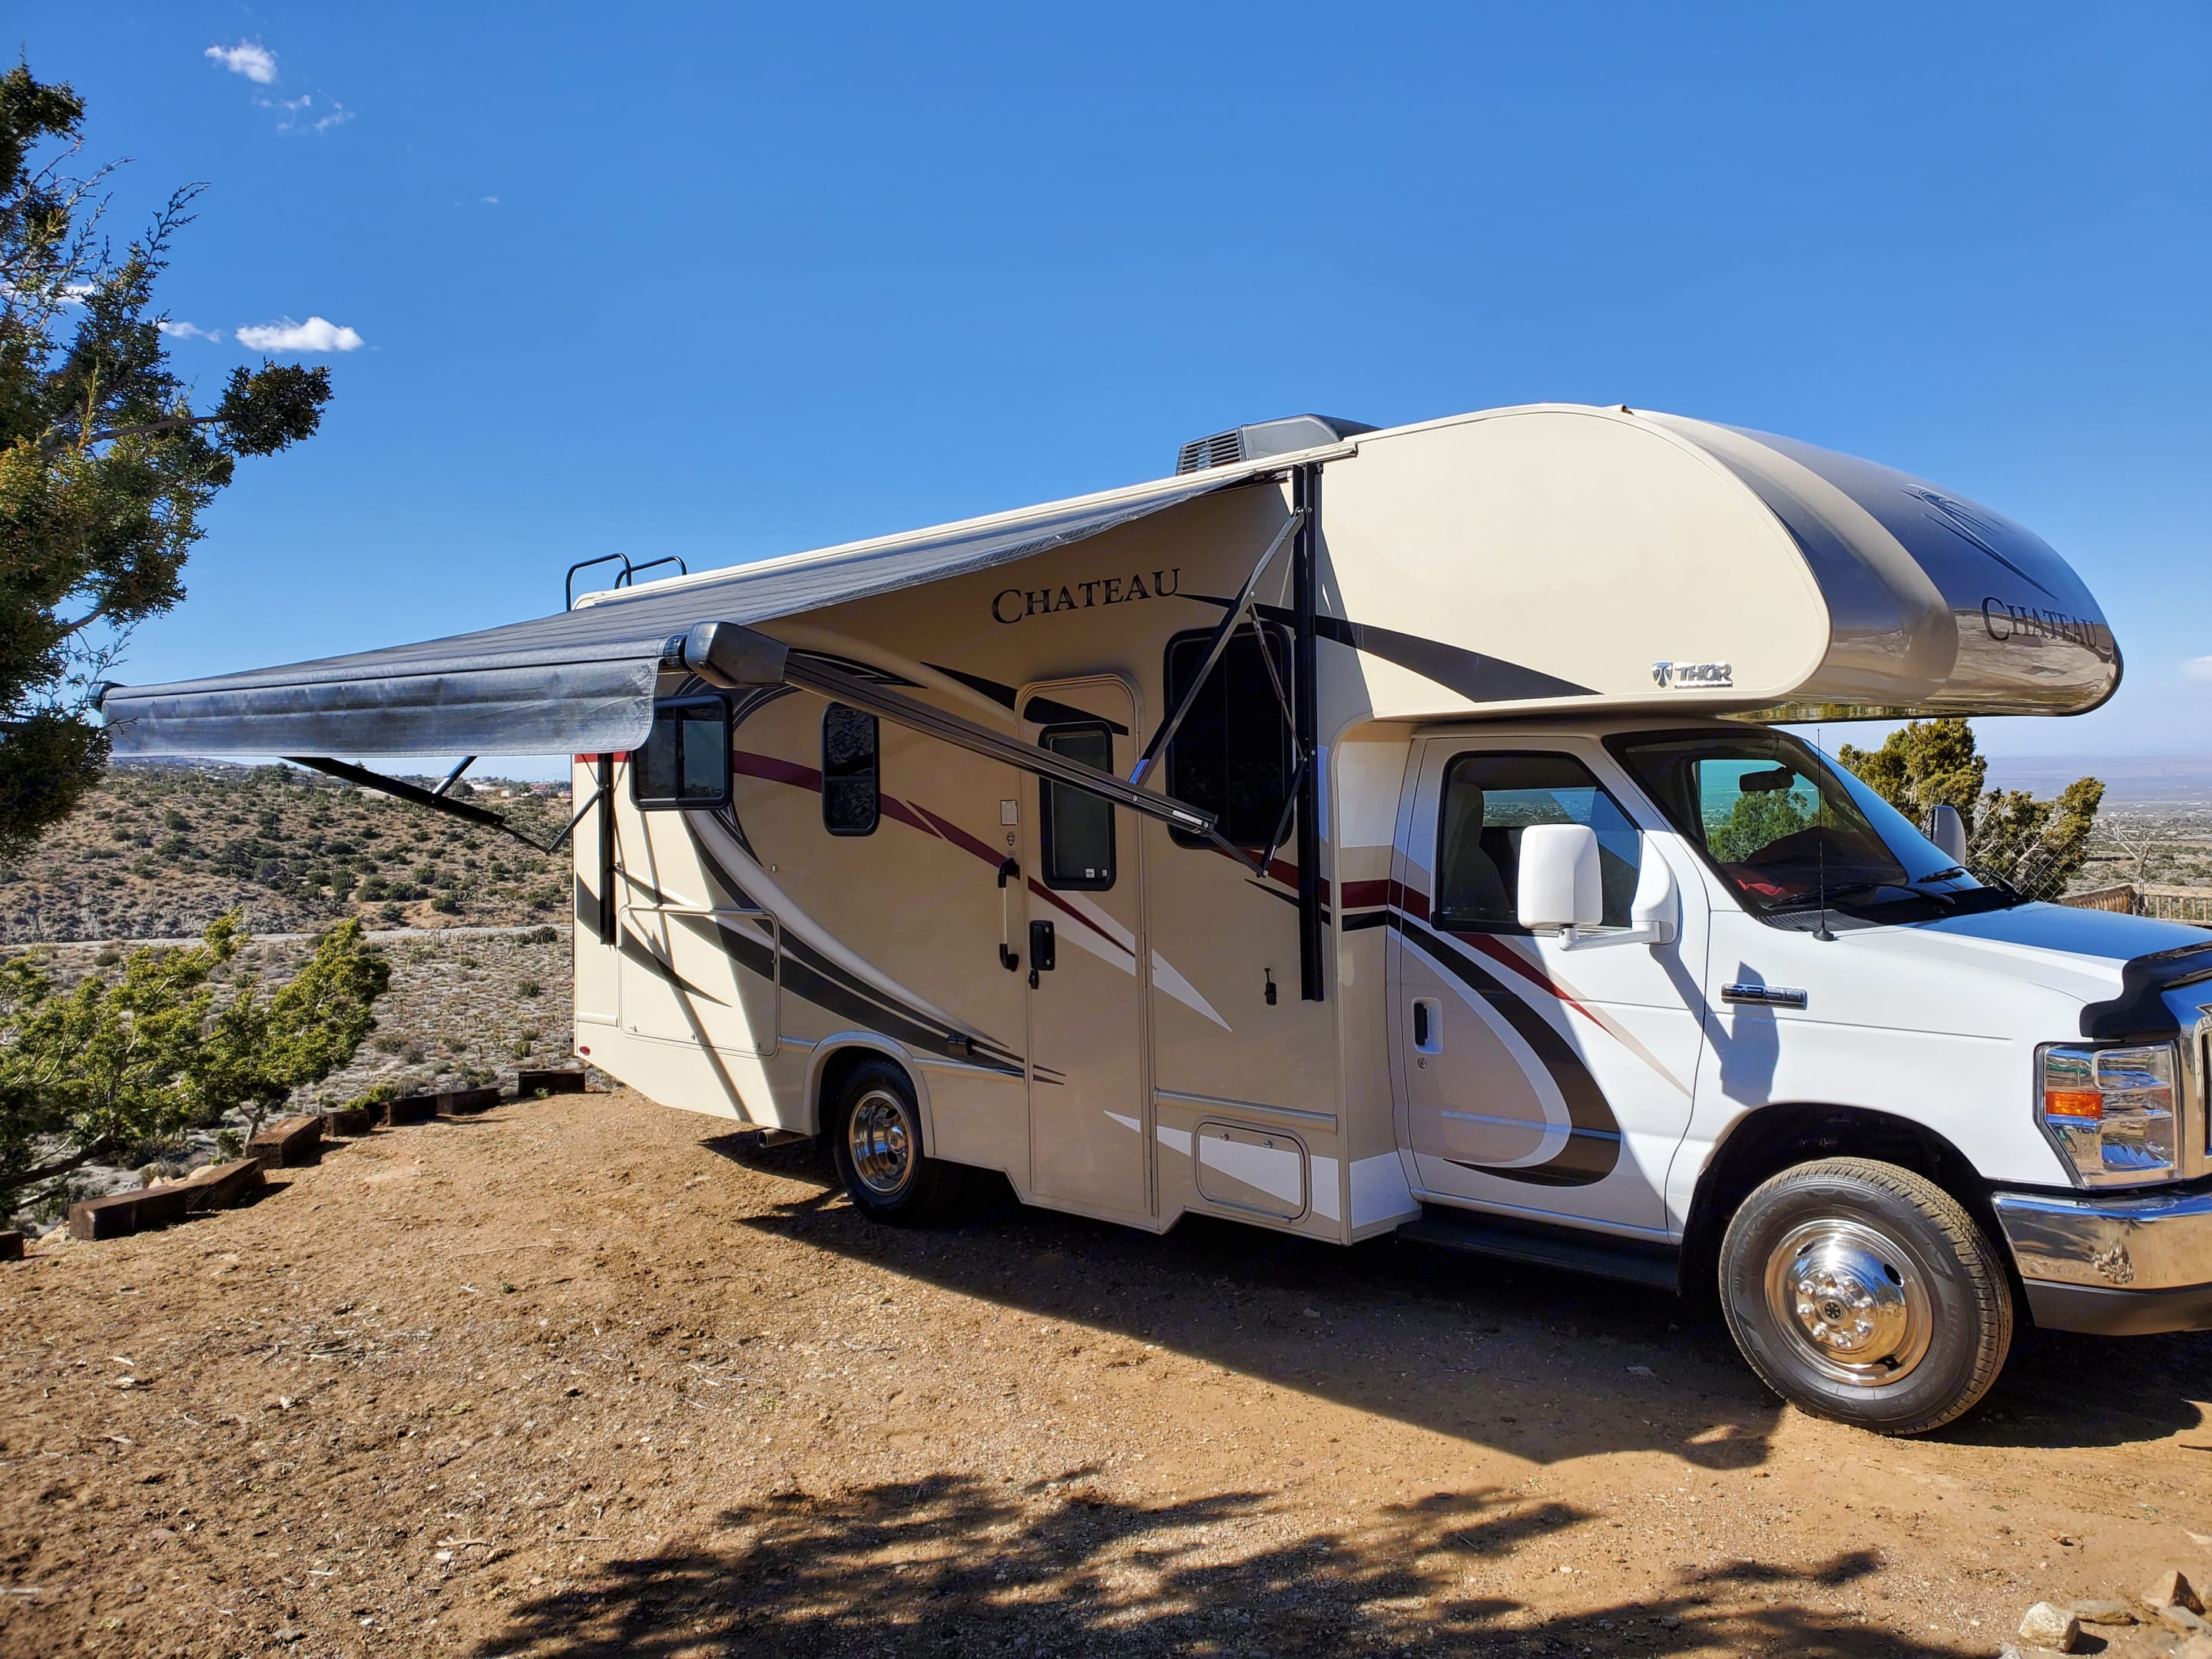 Stationary rental available with an awesome view and only 10 minutes to Wrightwood and Mountain High.. Thor Motor Coach Chateau 2018